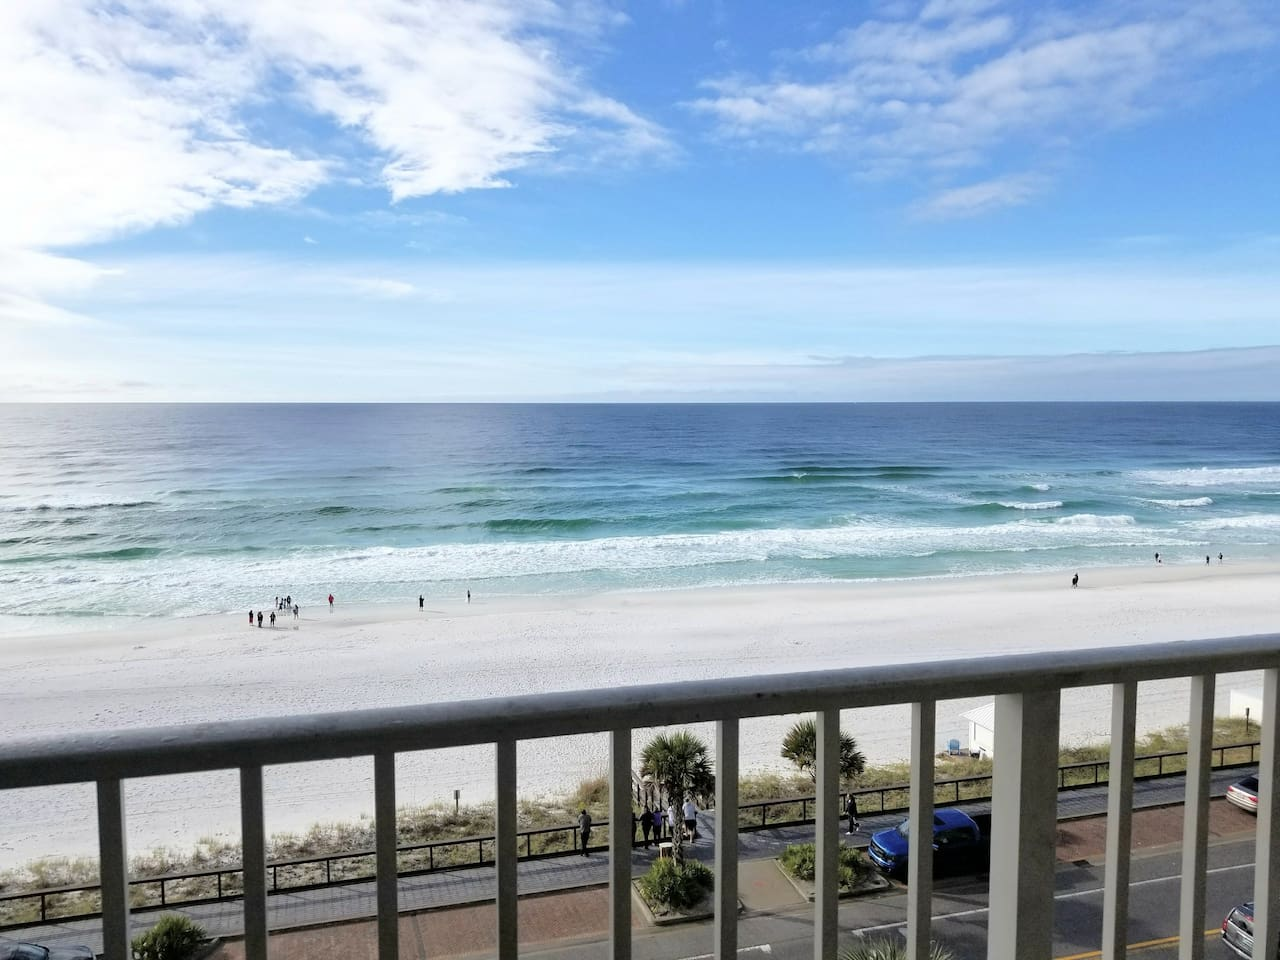 A gulf front condo with nice ocean view and easy access to the beach.